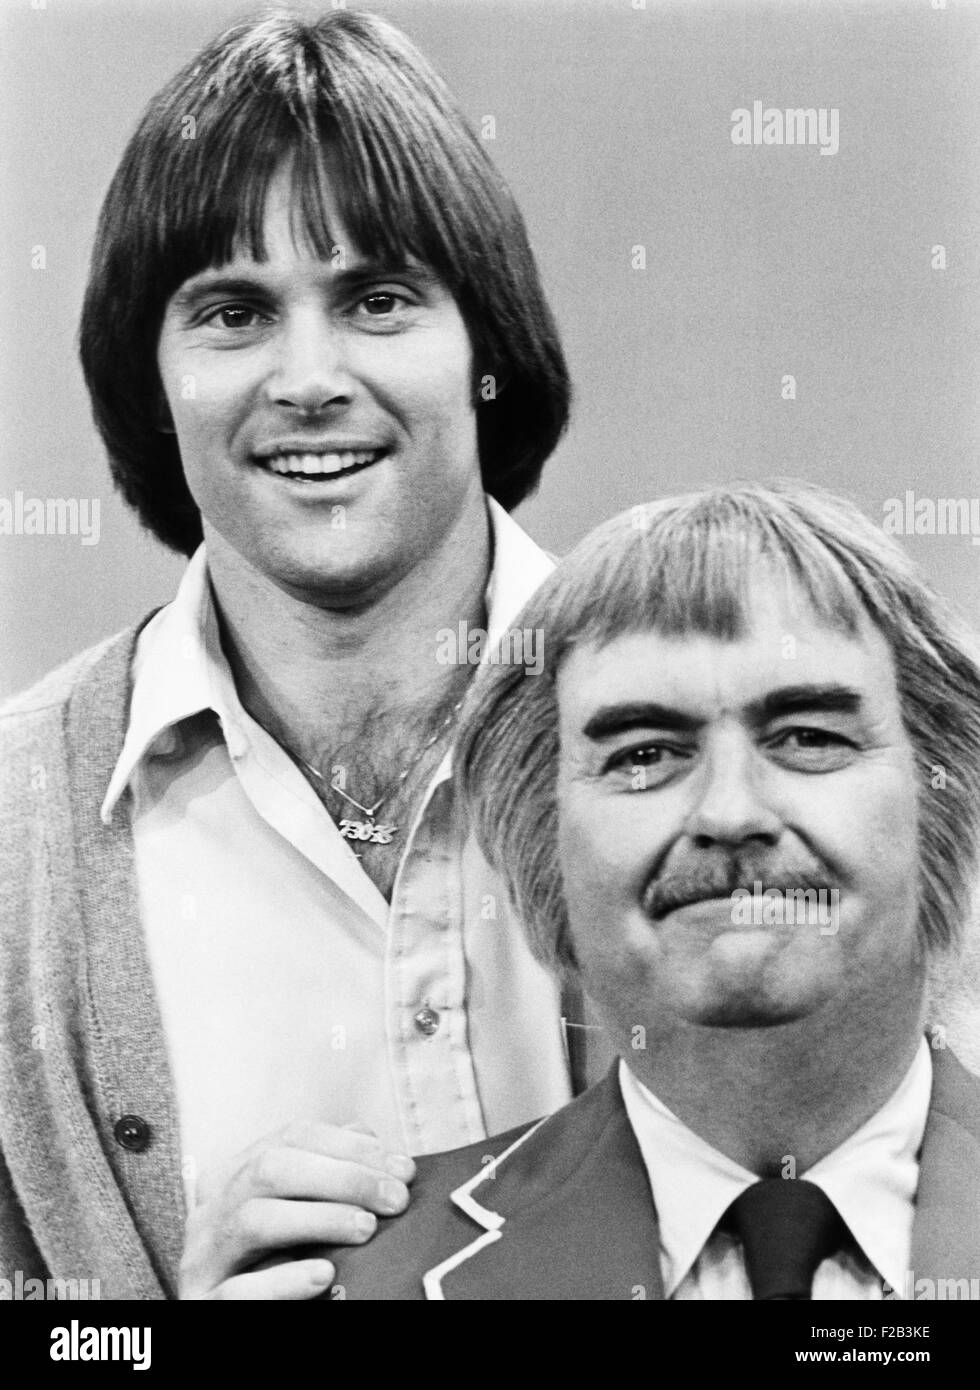 Bruce Jenner with Bob Keeshan in August 1978. Keeshan created and played the character 'Captain Kangaroo'. - Stock Image